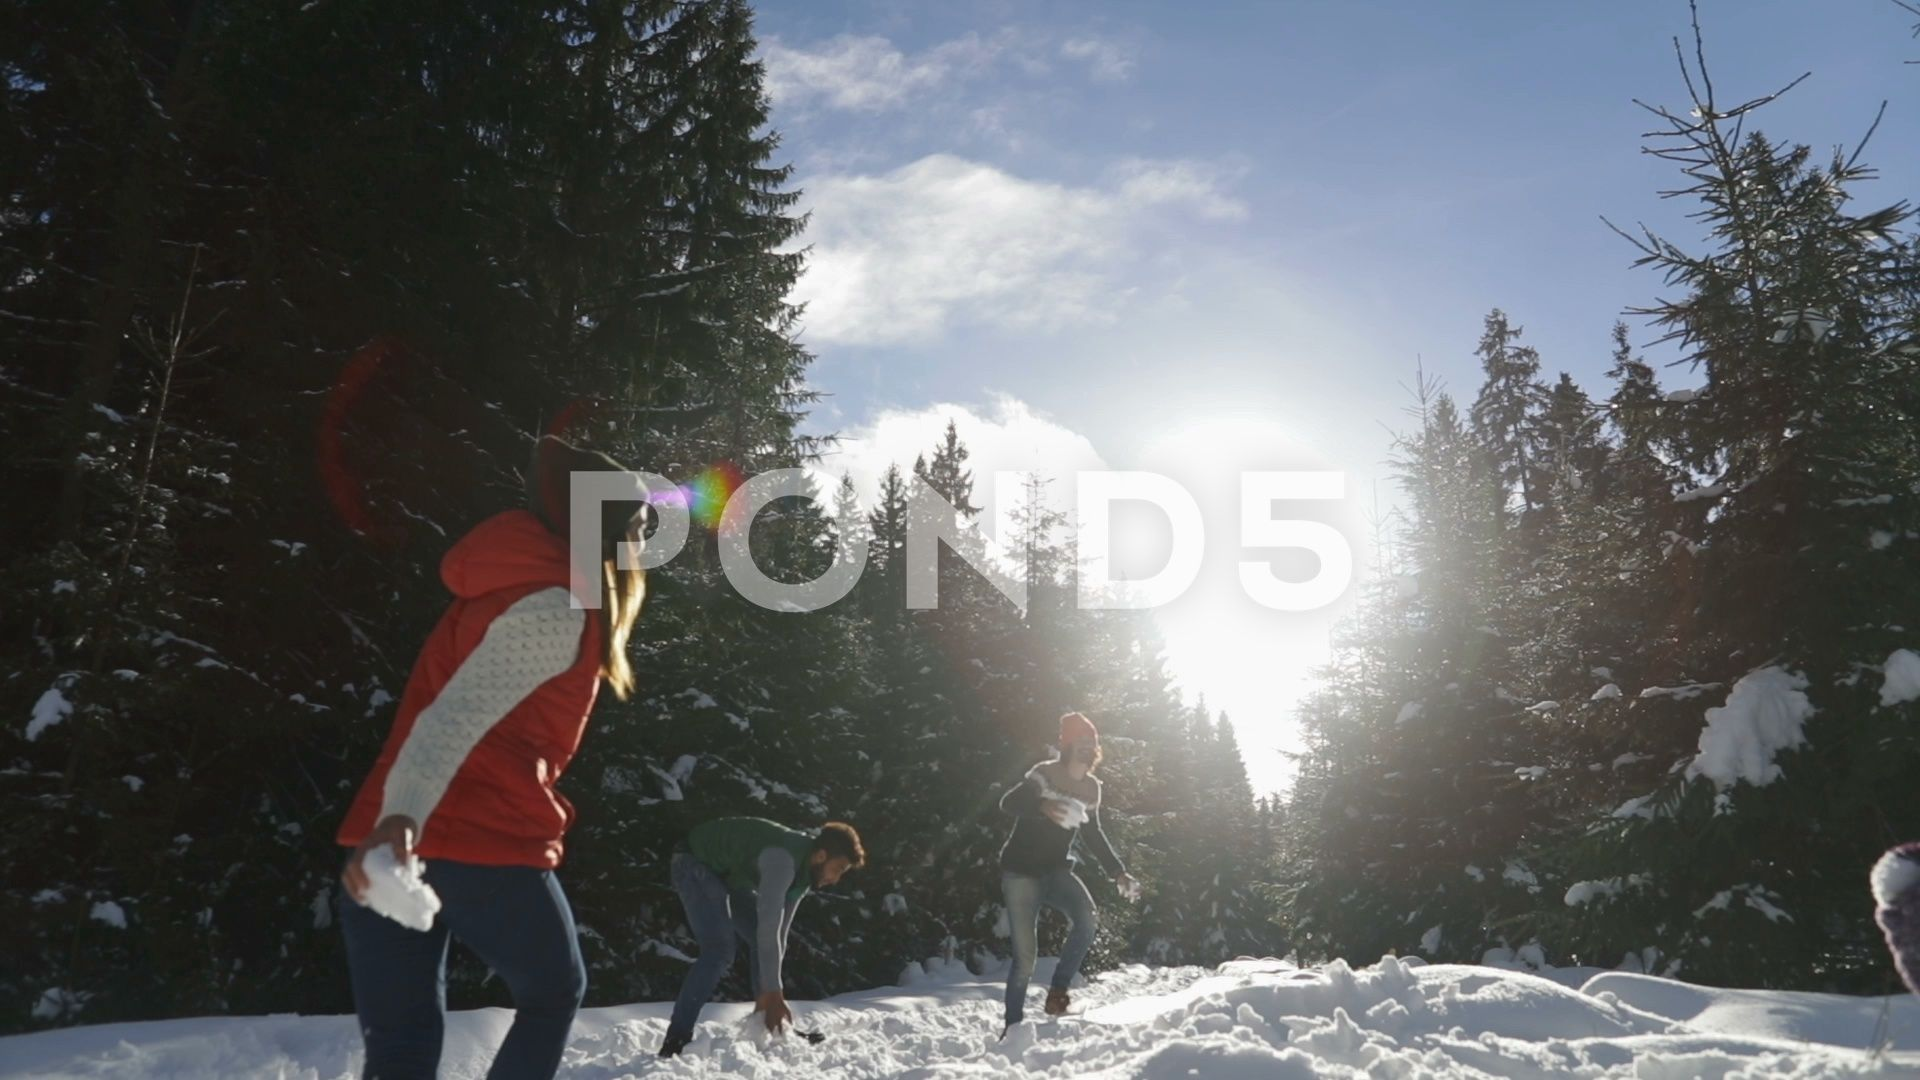 People Group Snow Forest Young Friends Having Fun Playing Snowballs Outdoor Stock Footage ForestYoungFriendsPeople